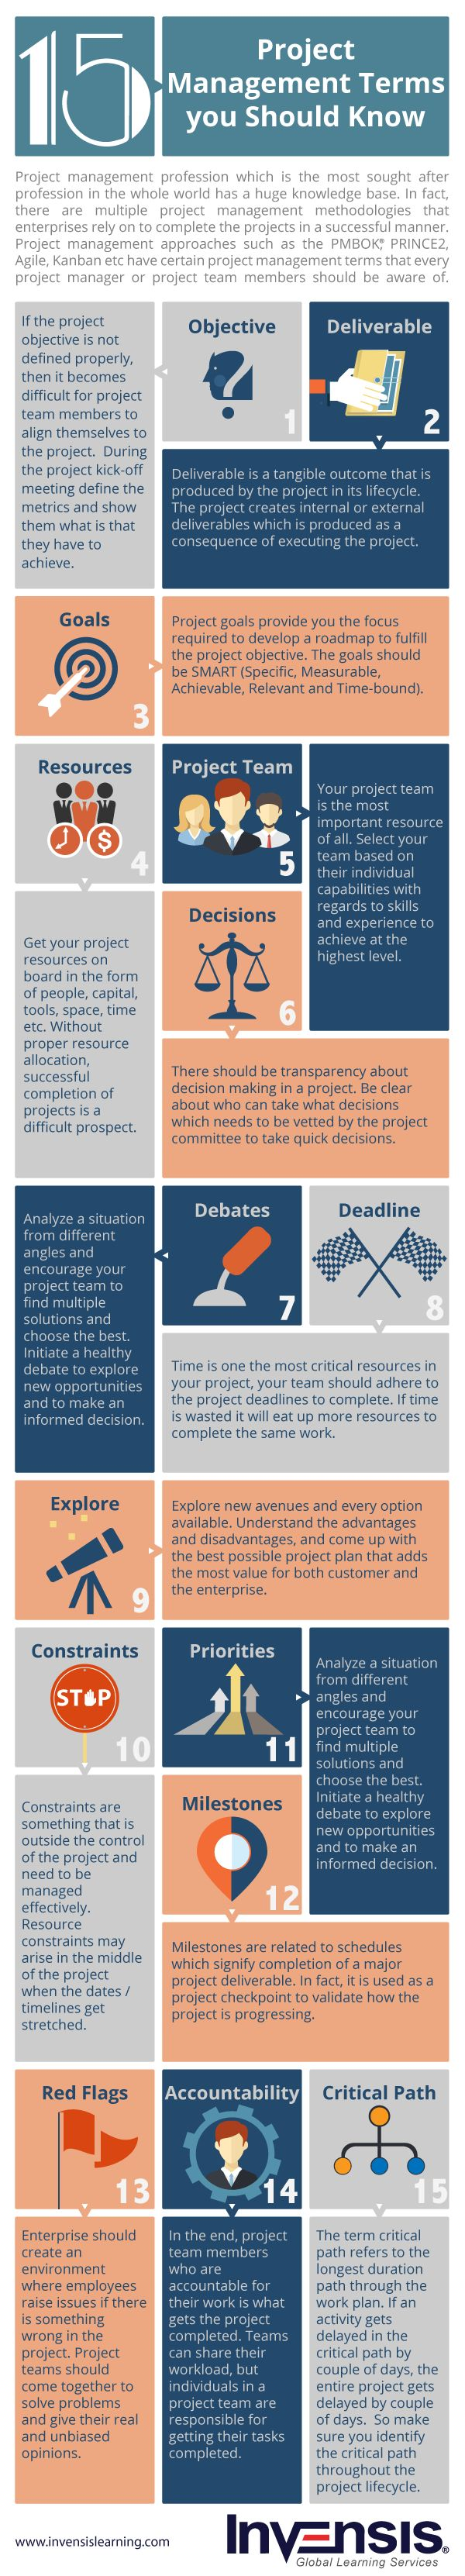 15 Project Management Terms you Should Know Infographic - http://elearninginfographics.com/15-project-management-terms-know-infographic/